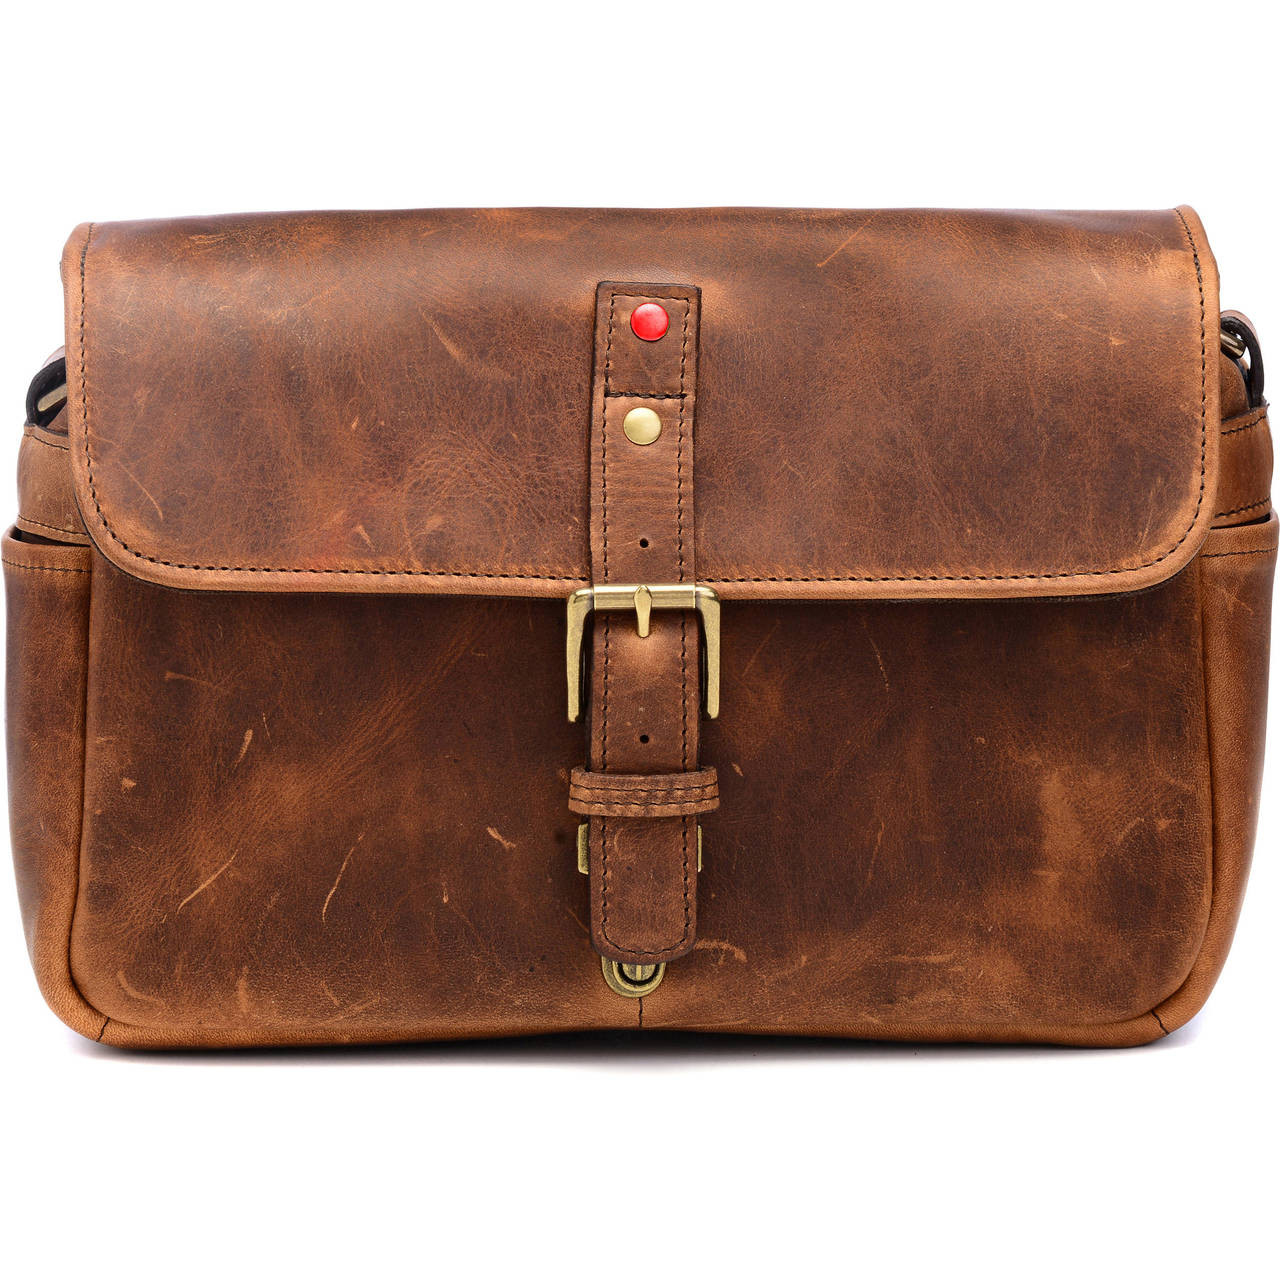 32003166b8f ONA Bowery Leather Camera Bag - Antique Cognac (Leica Edition ...